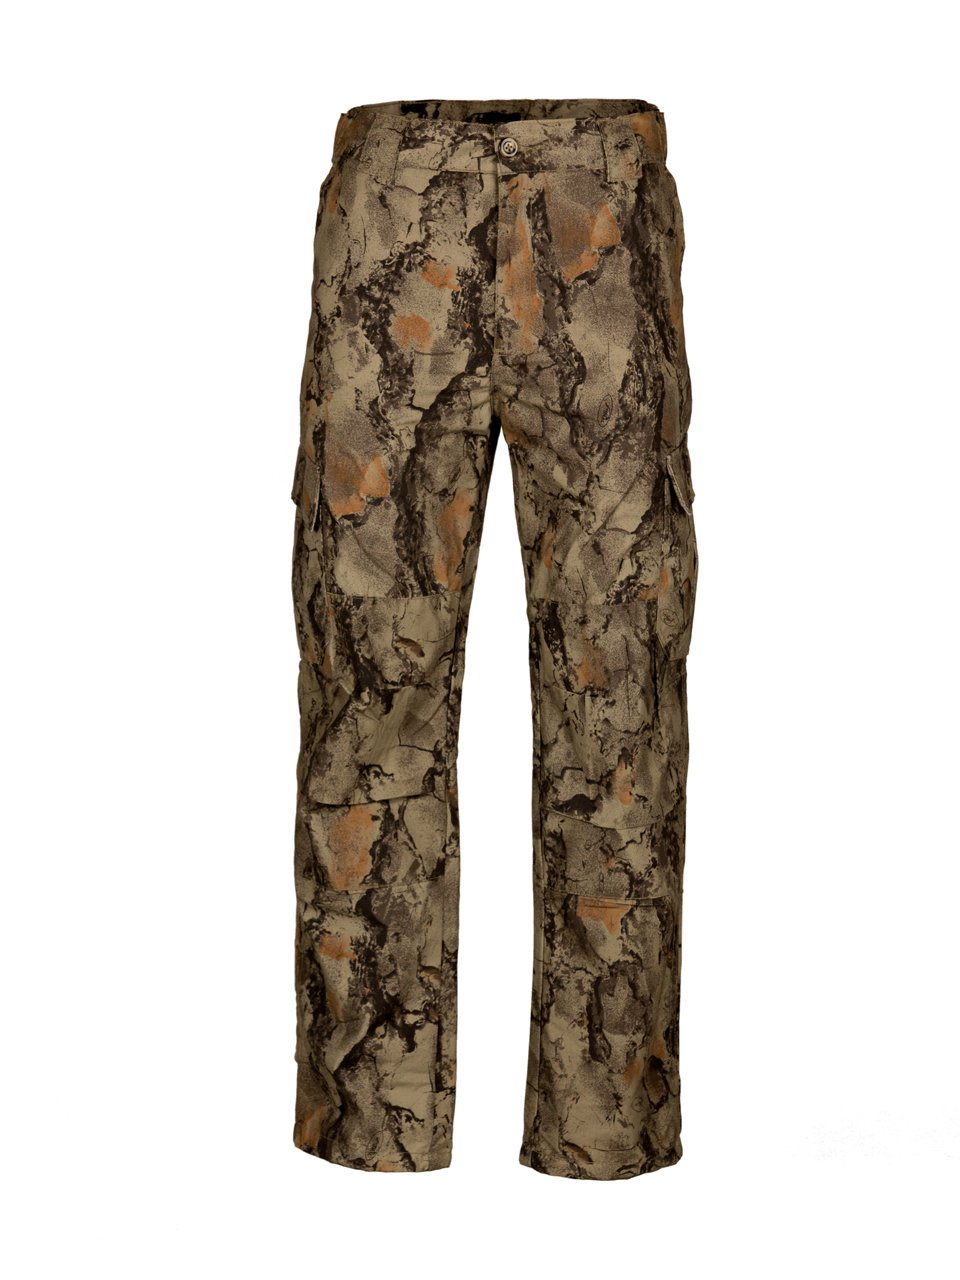 Natural Gear 6 Pocket Tactical Fatigue Pant for Men and Women, Lightweight Hunting Pants, Made with Cotton/Poly Ripstop Material (Small) by Natural Gear